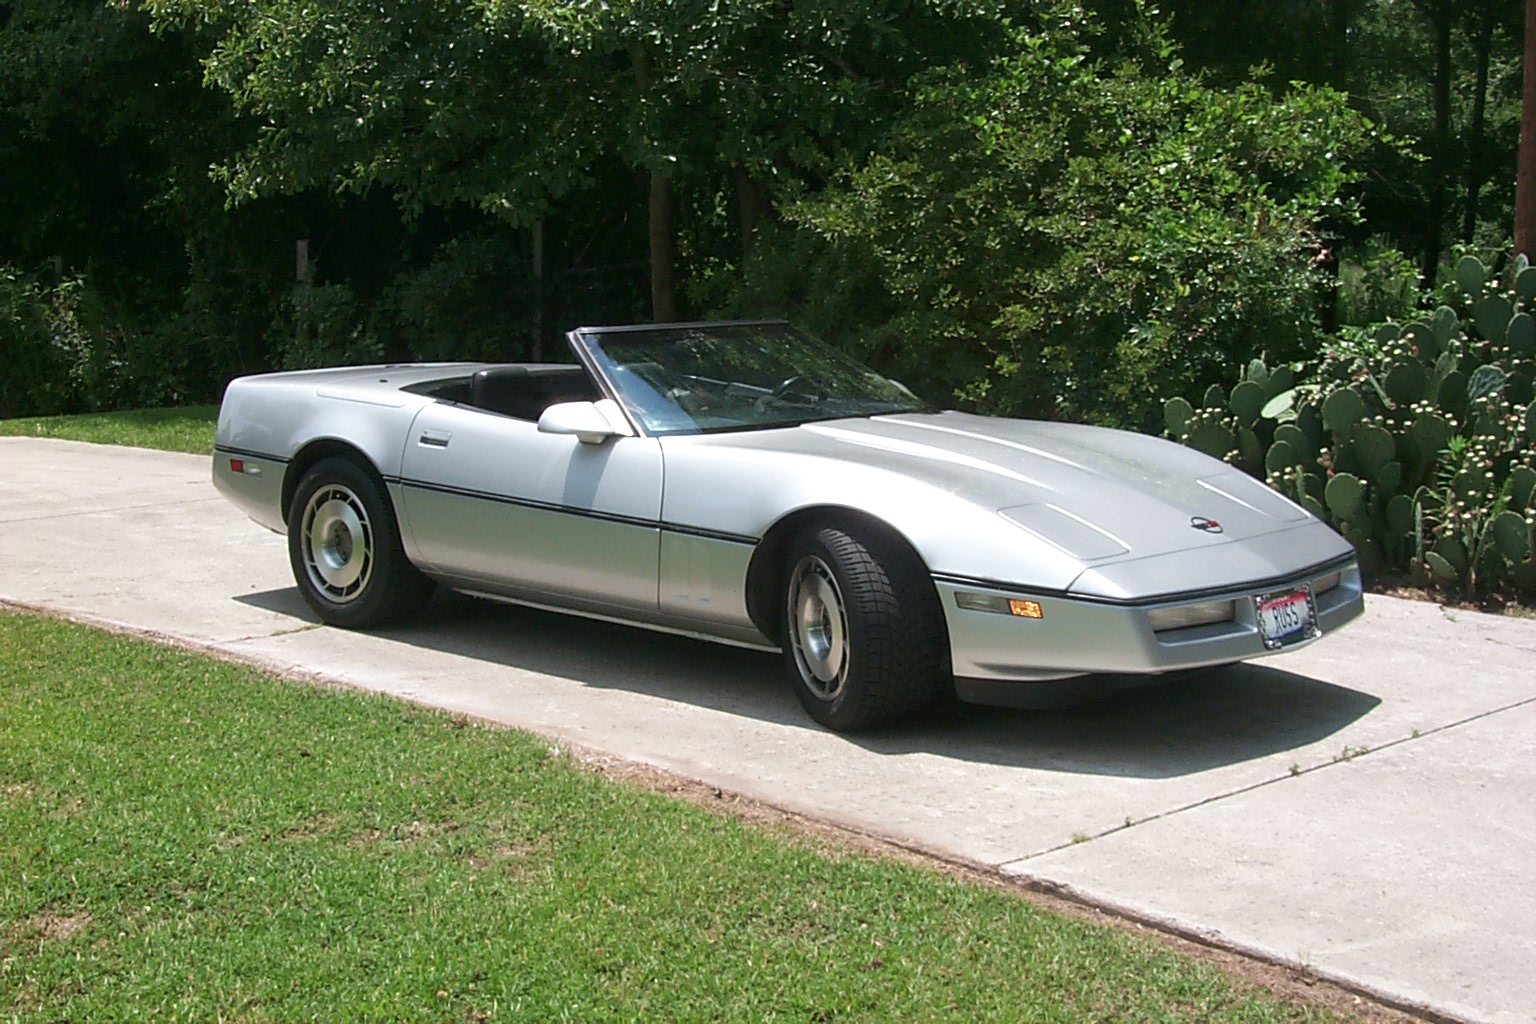 1987 Chevrolet Corvette Convertible Pictures T10170 pi7754704 on 2000 chevrolet camaro coupe